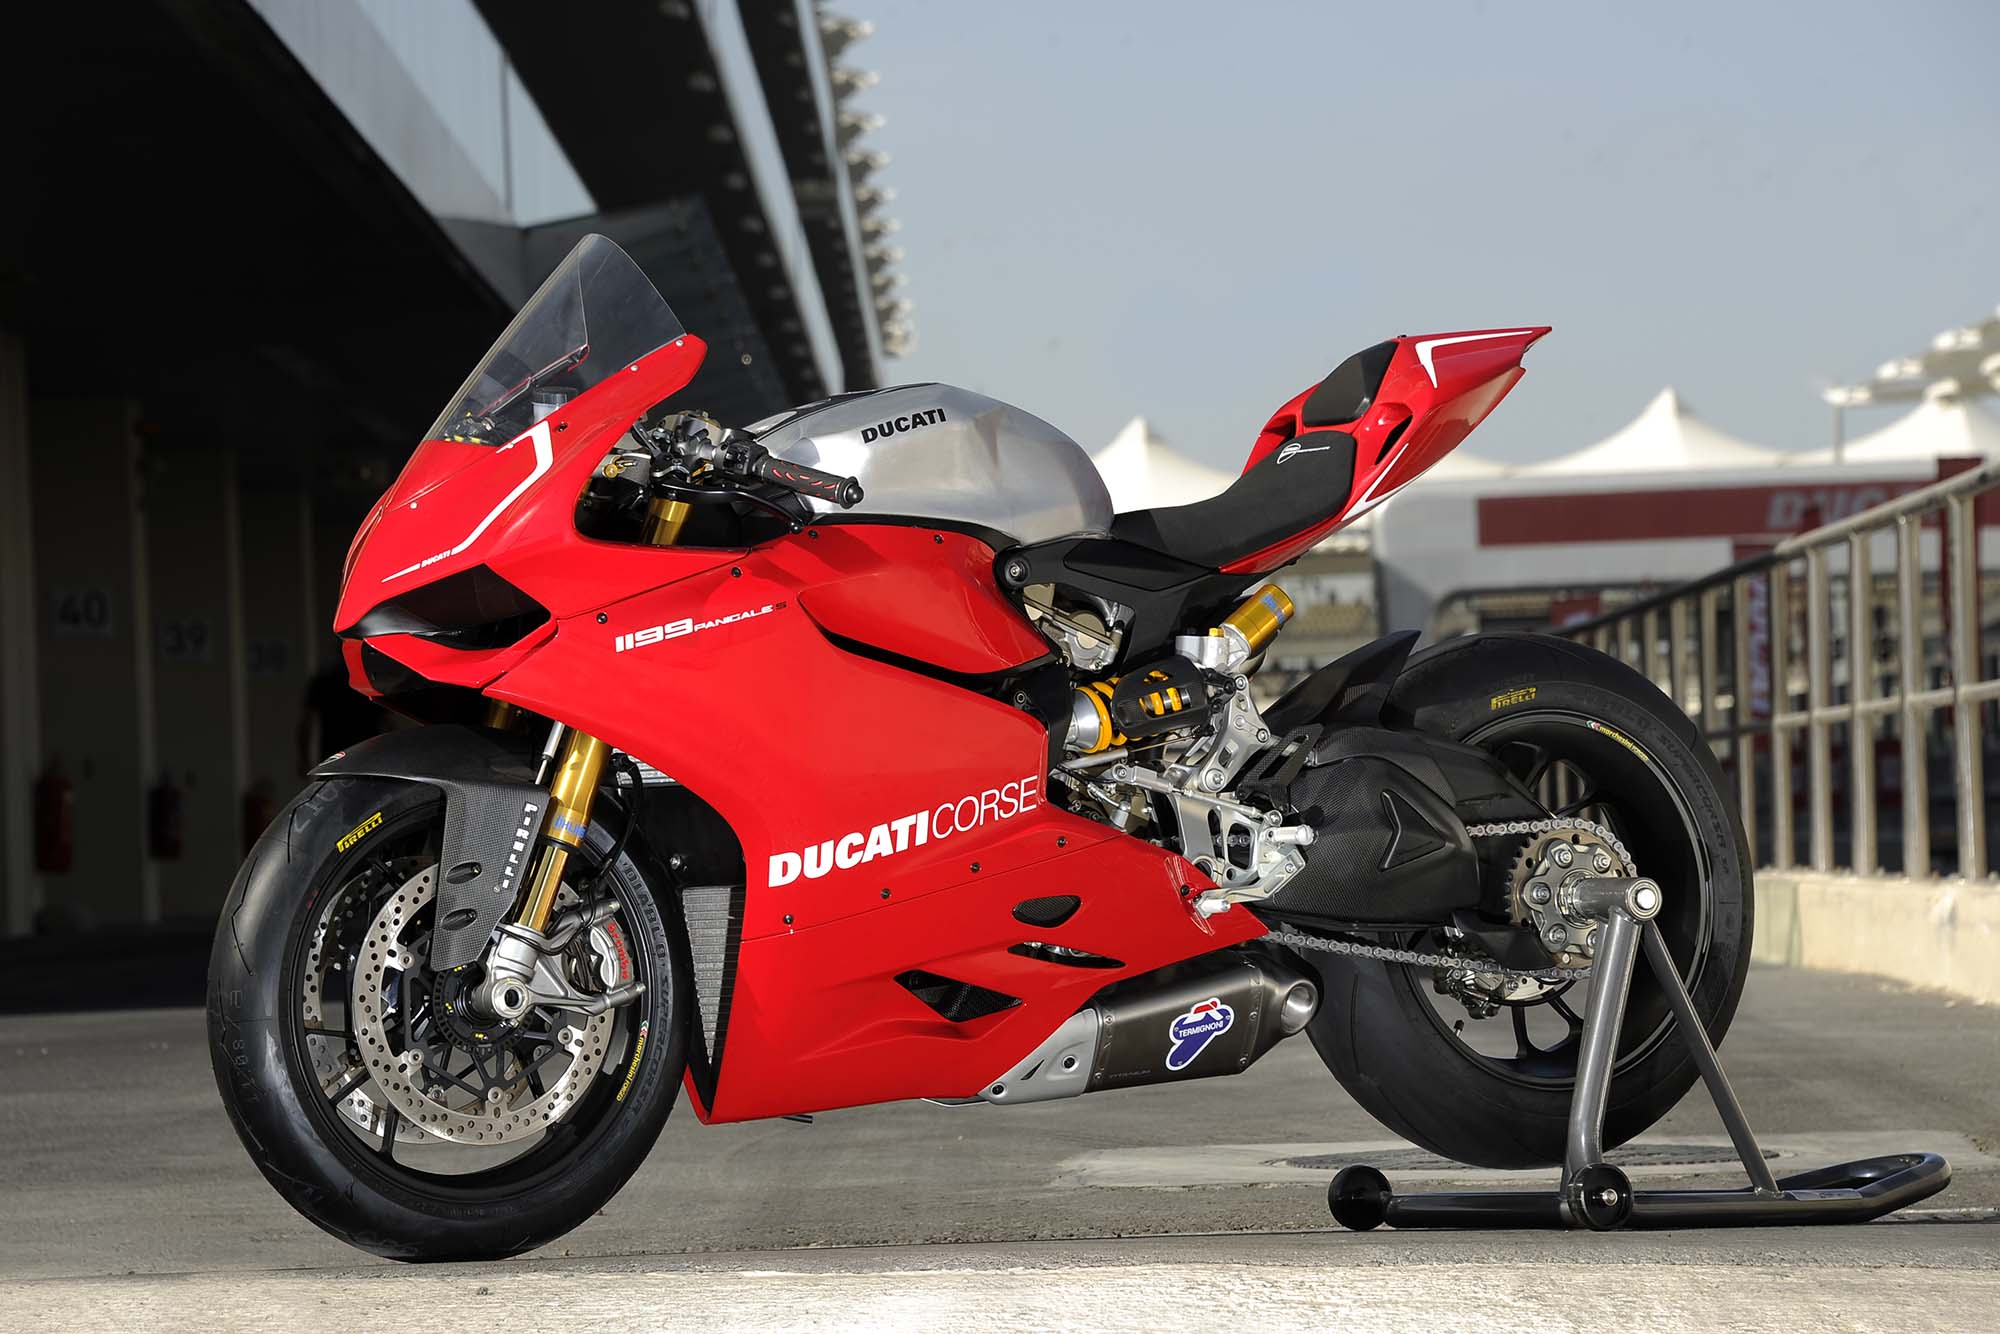 2013 ducati 1199 panigale r coming soon asphalt rubber. Black Bedroom Furniture Sets. Home Design Ideas